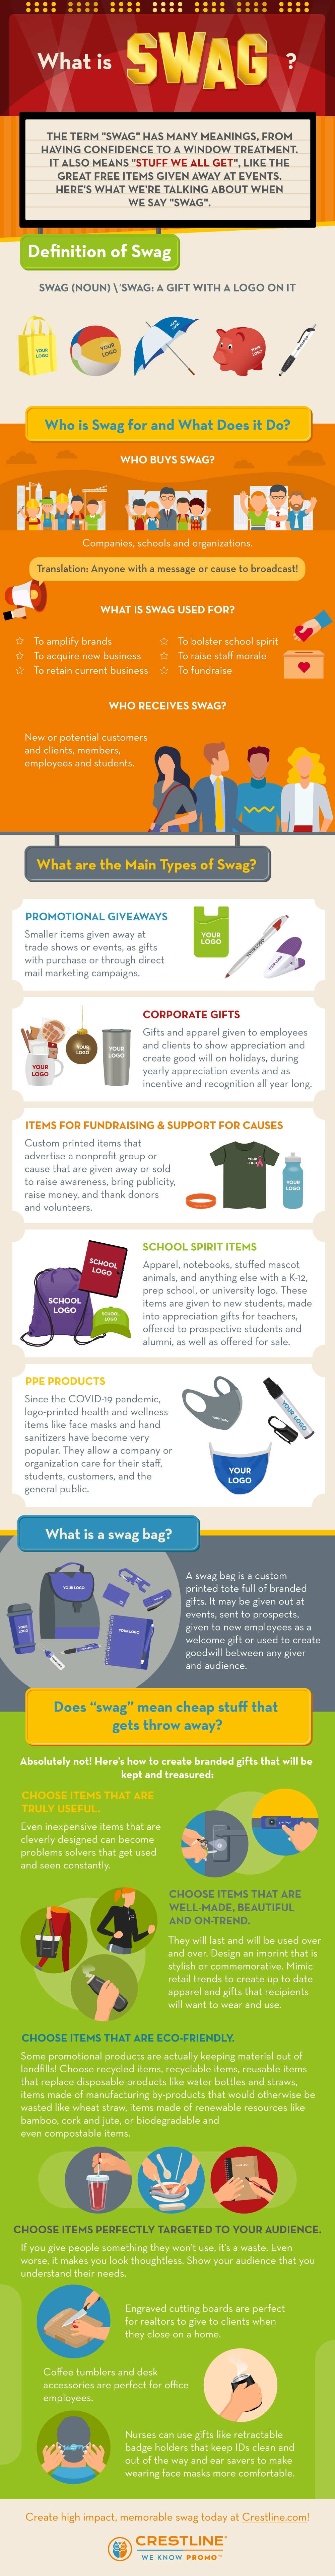 What is Swag Infographic